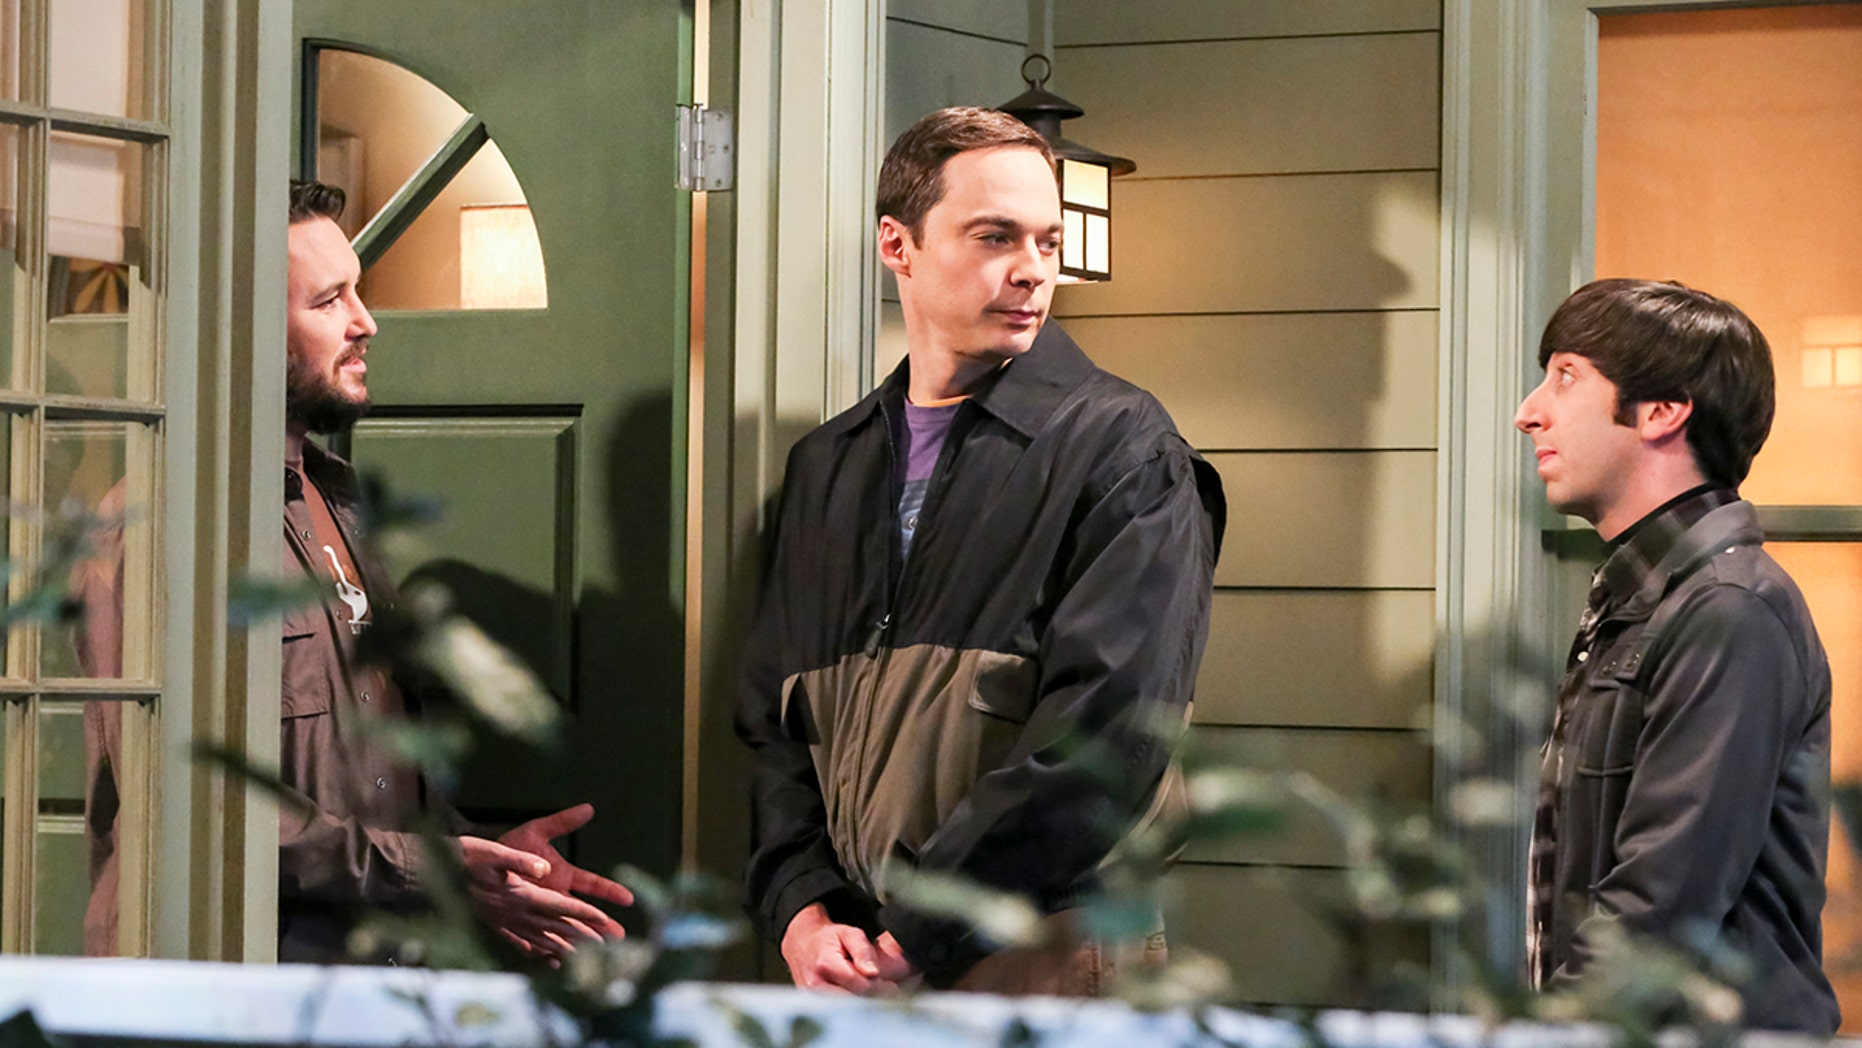 Wil Wheaton (himself), Sheldon Cooper (Jim Parsons) and Howard Wolowitz (Simon Helberg). When Sheldon petitions Wil Wheaton to appear on the new Professor Proton show,